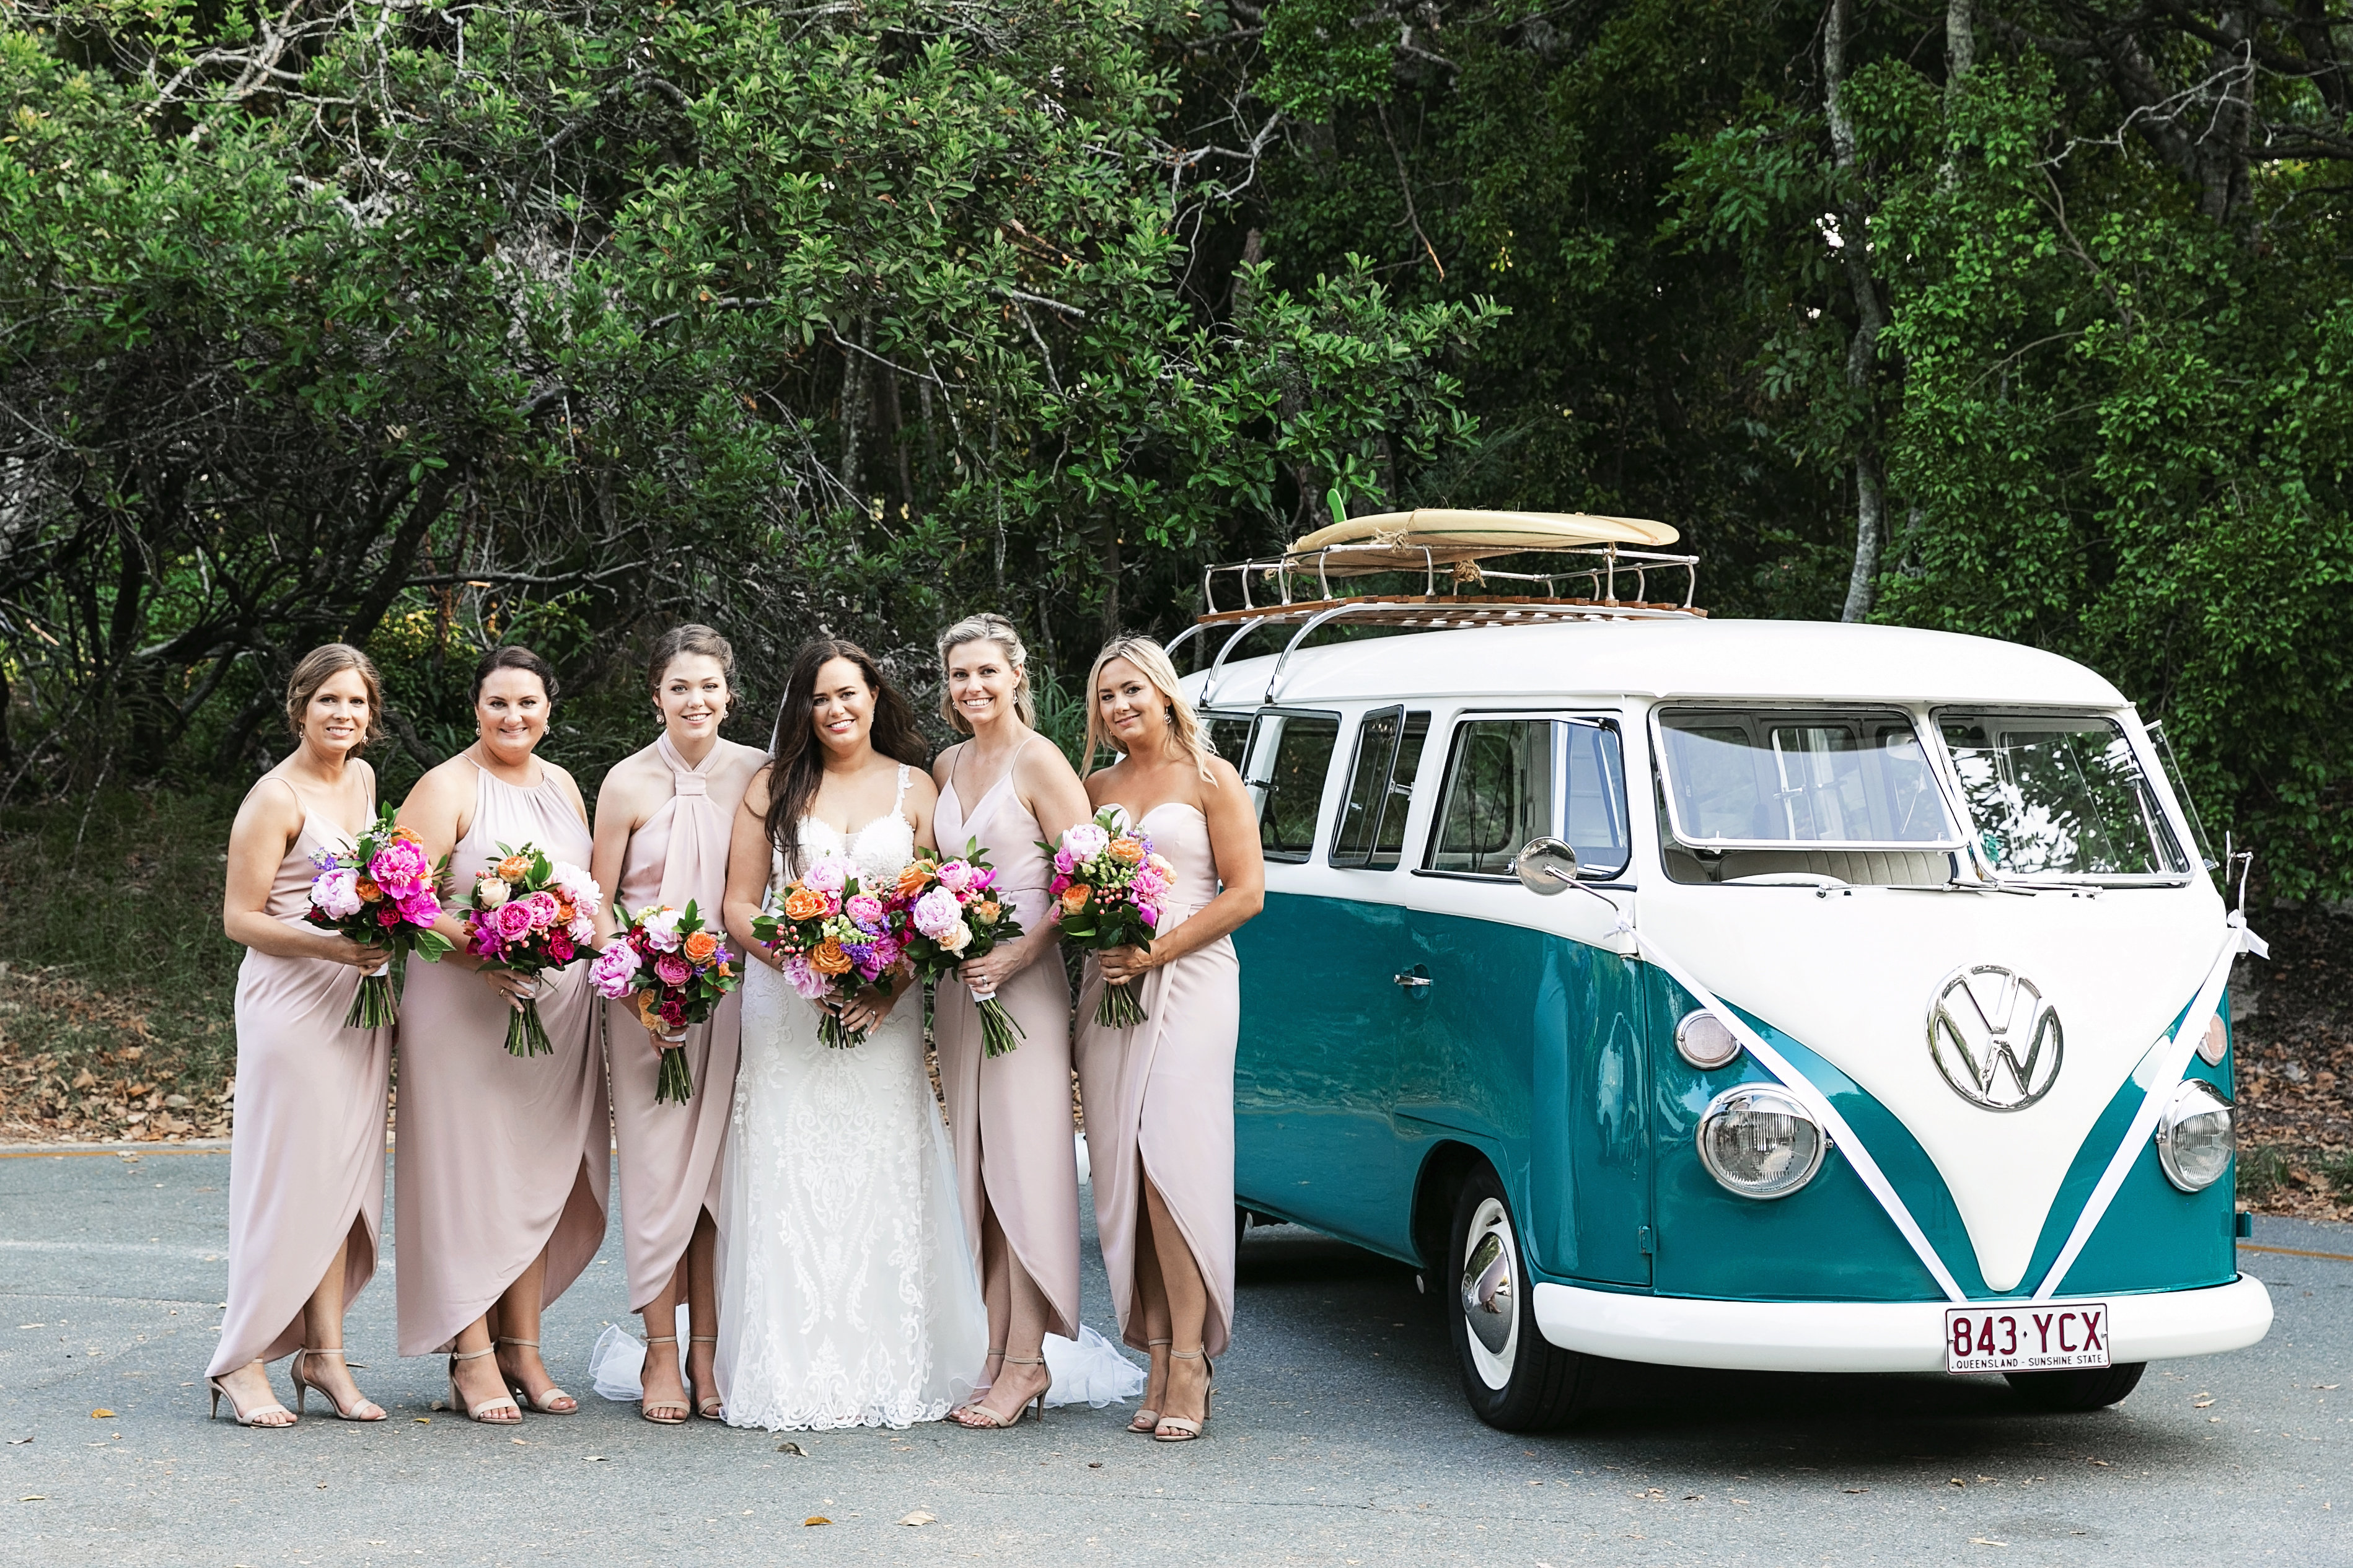 Noosa wedding at Sails Restaurant featuring colourful blooms and pink peonies.